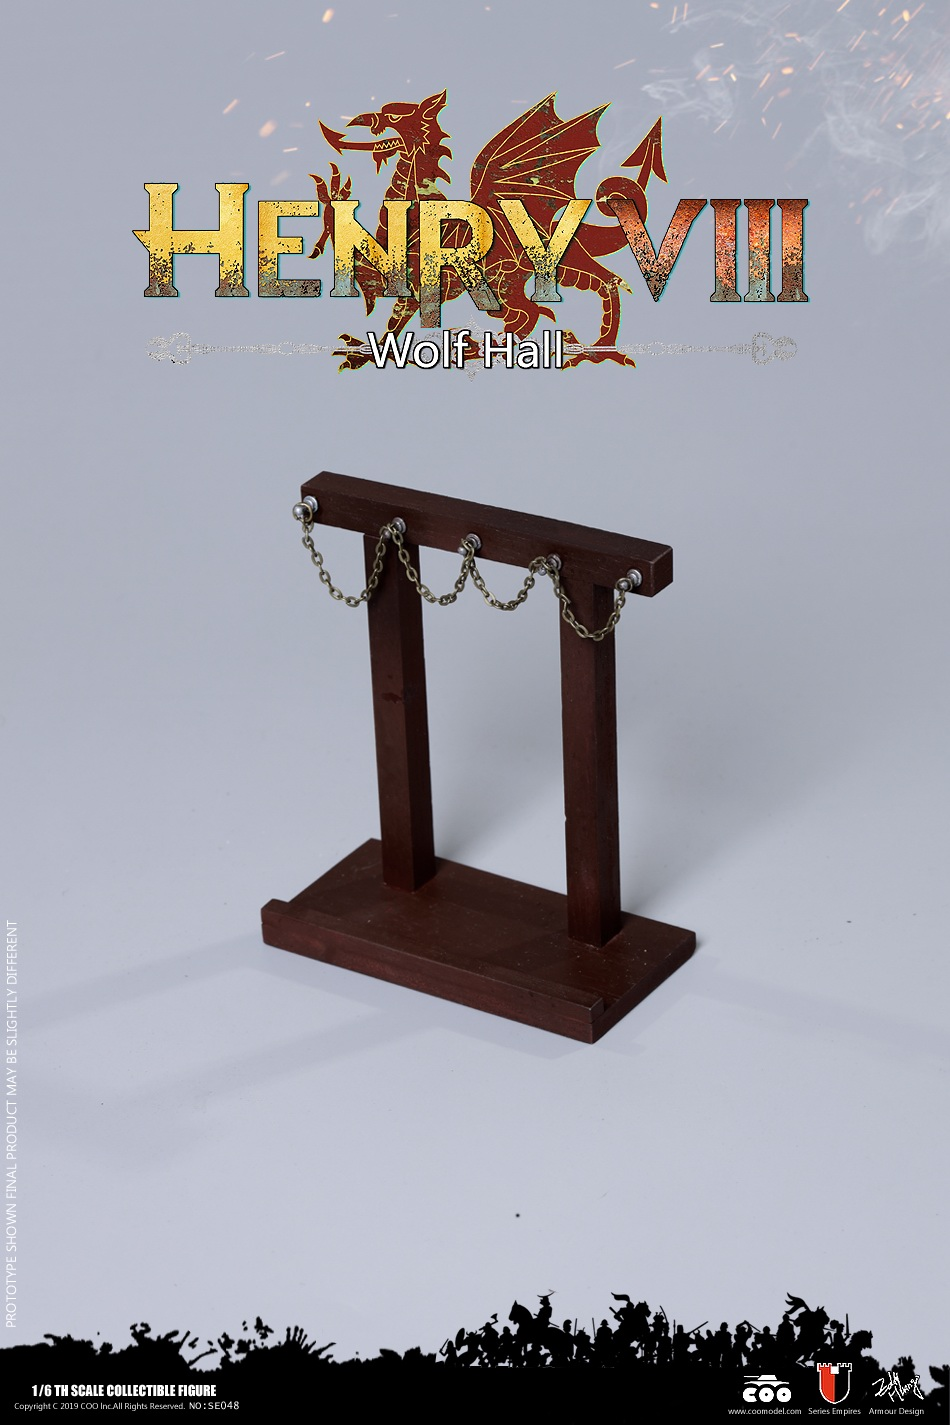 CooModel - NEW PRODUCT: COOMODEL: 1 / 6 alloy die-casting empire series - Henry VIII Lions version of the red dragon version of the Tudor version of the Wolf Hall scene 00374910